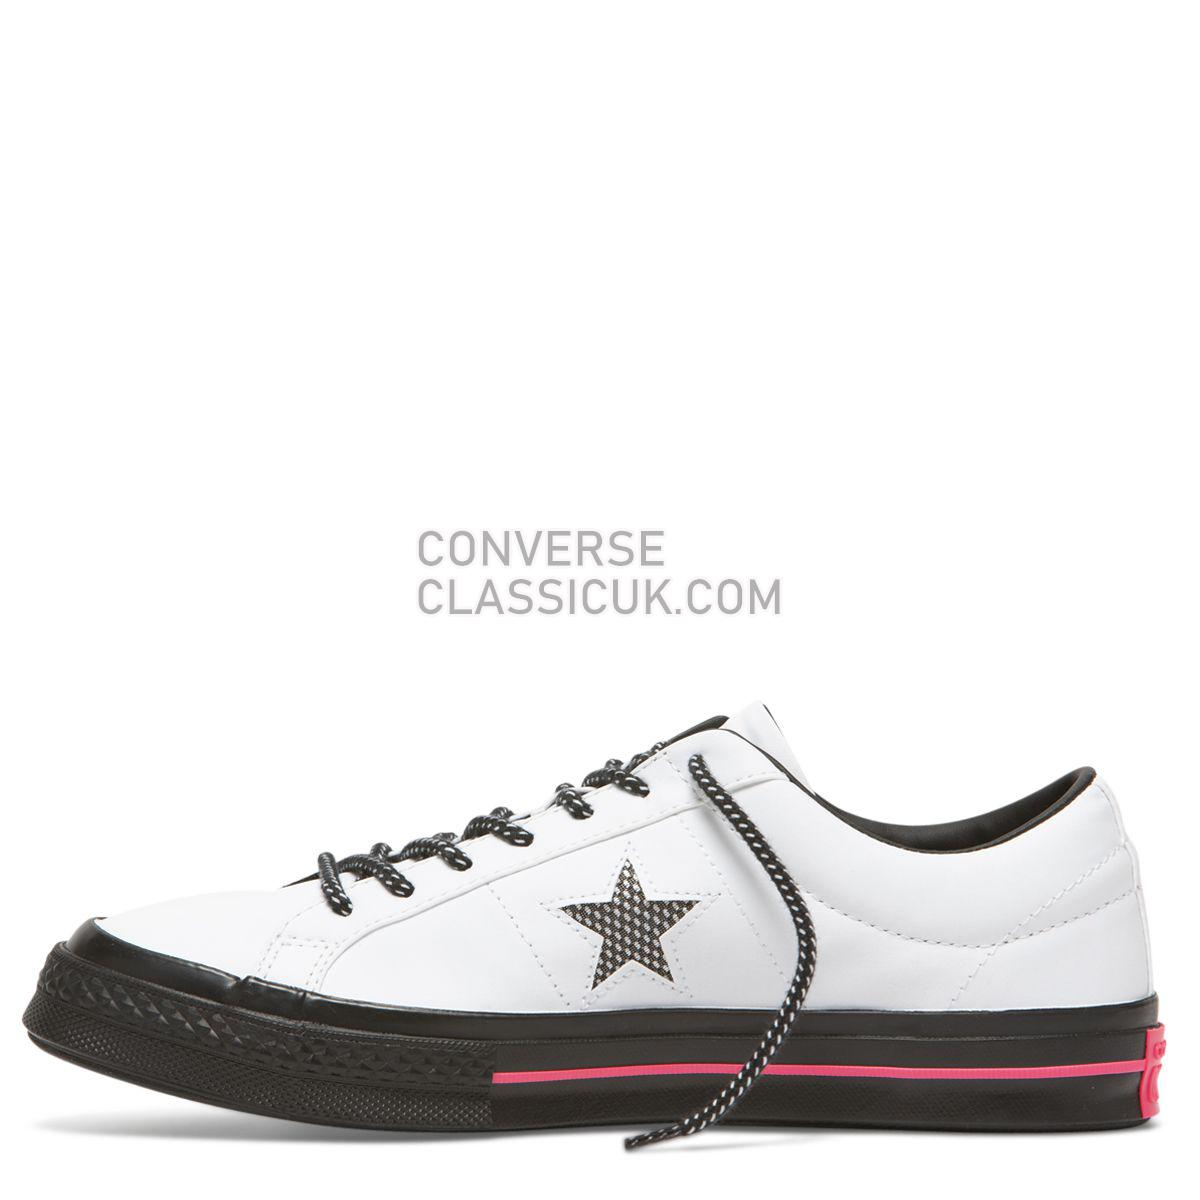 Converse One Star Get Tubed Low Top White Mens Womens Unisex 164223 White/Black/Racer Pink Shoes